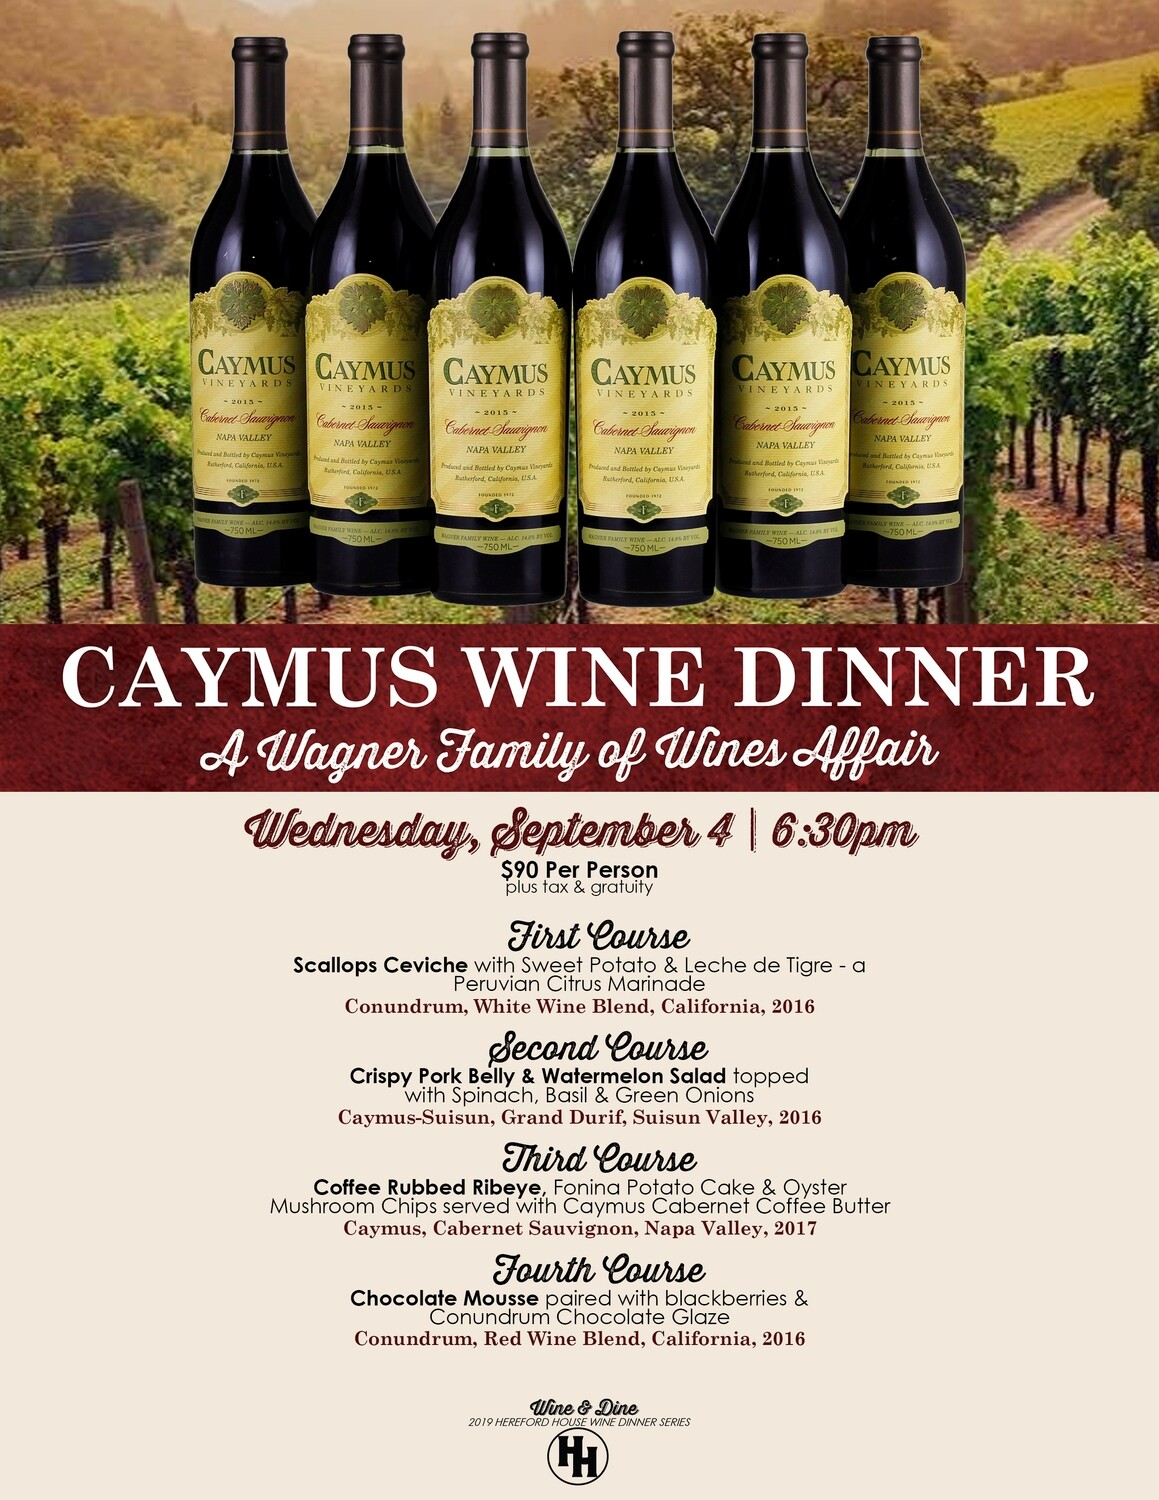 Caymus Wine Dinner *$120 includes the cost of one ticket ($90) plus tax and gratuity